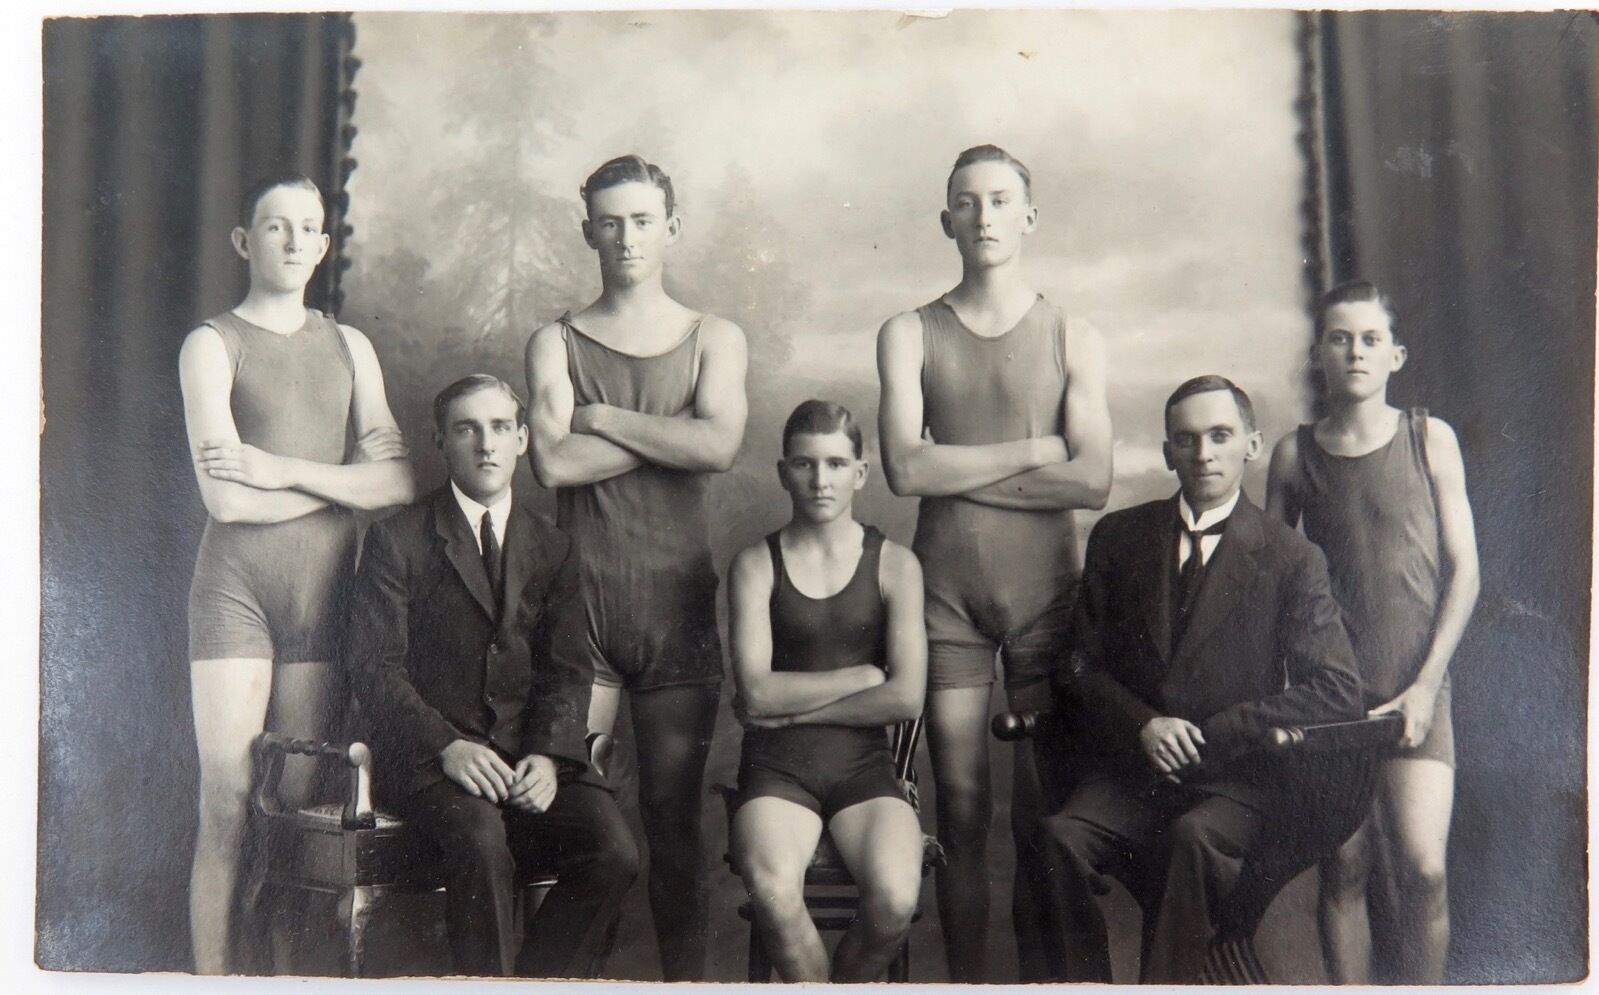 RARE 1920 REAL PHOTO POSTCARD IPSWICH GRAMMAR SCHOOL, SWIMMING. J A HUNT